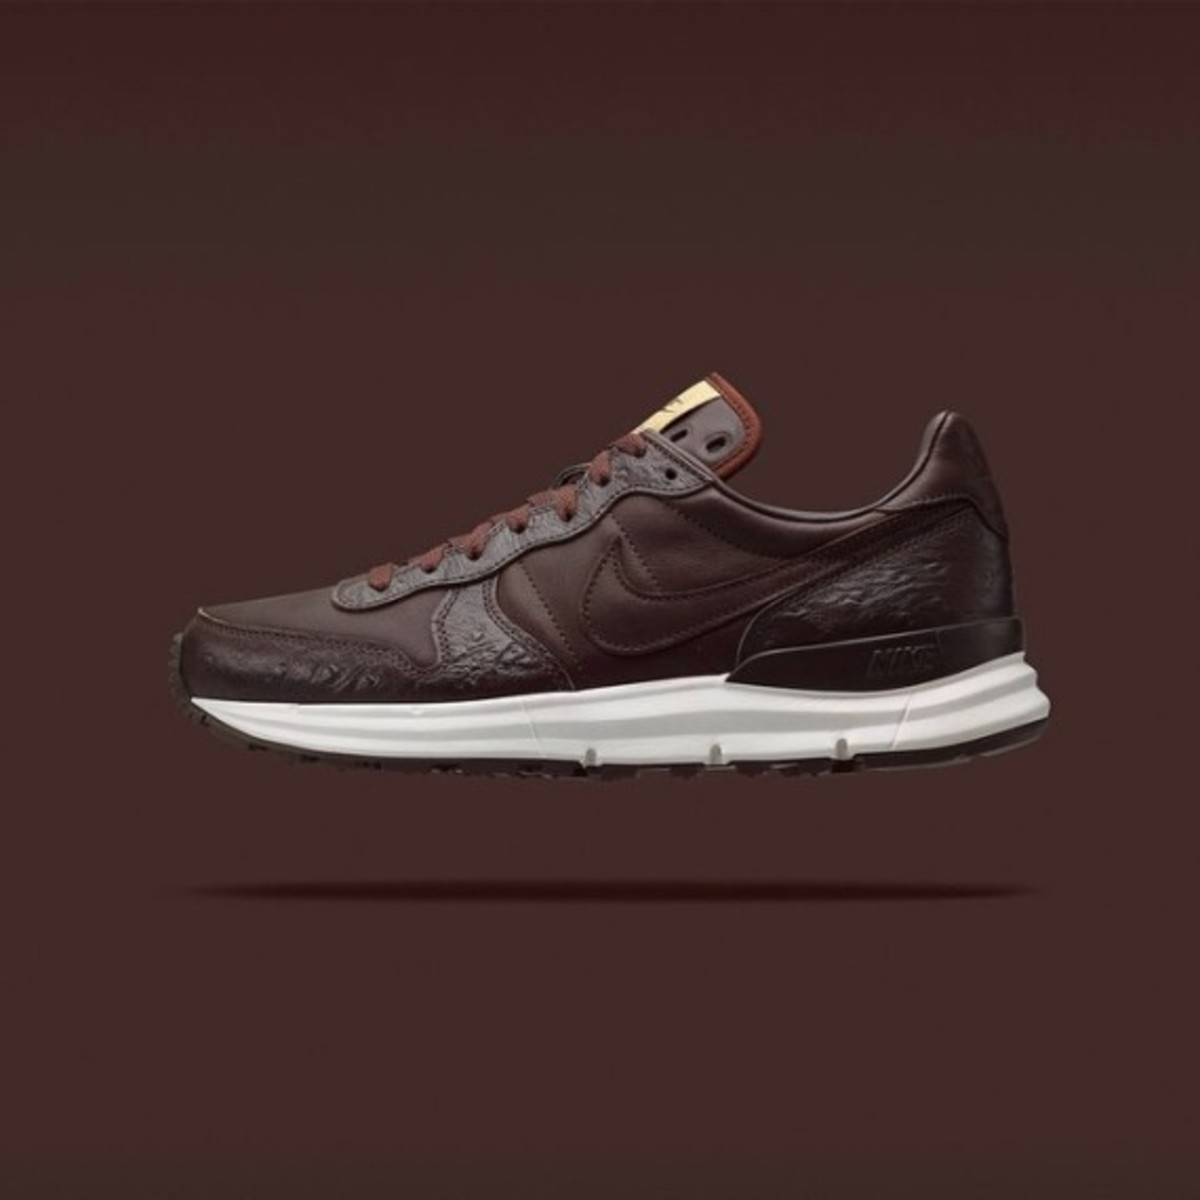 soph-nike-lunar-internationalist-03